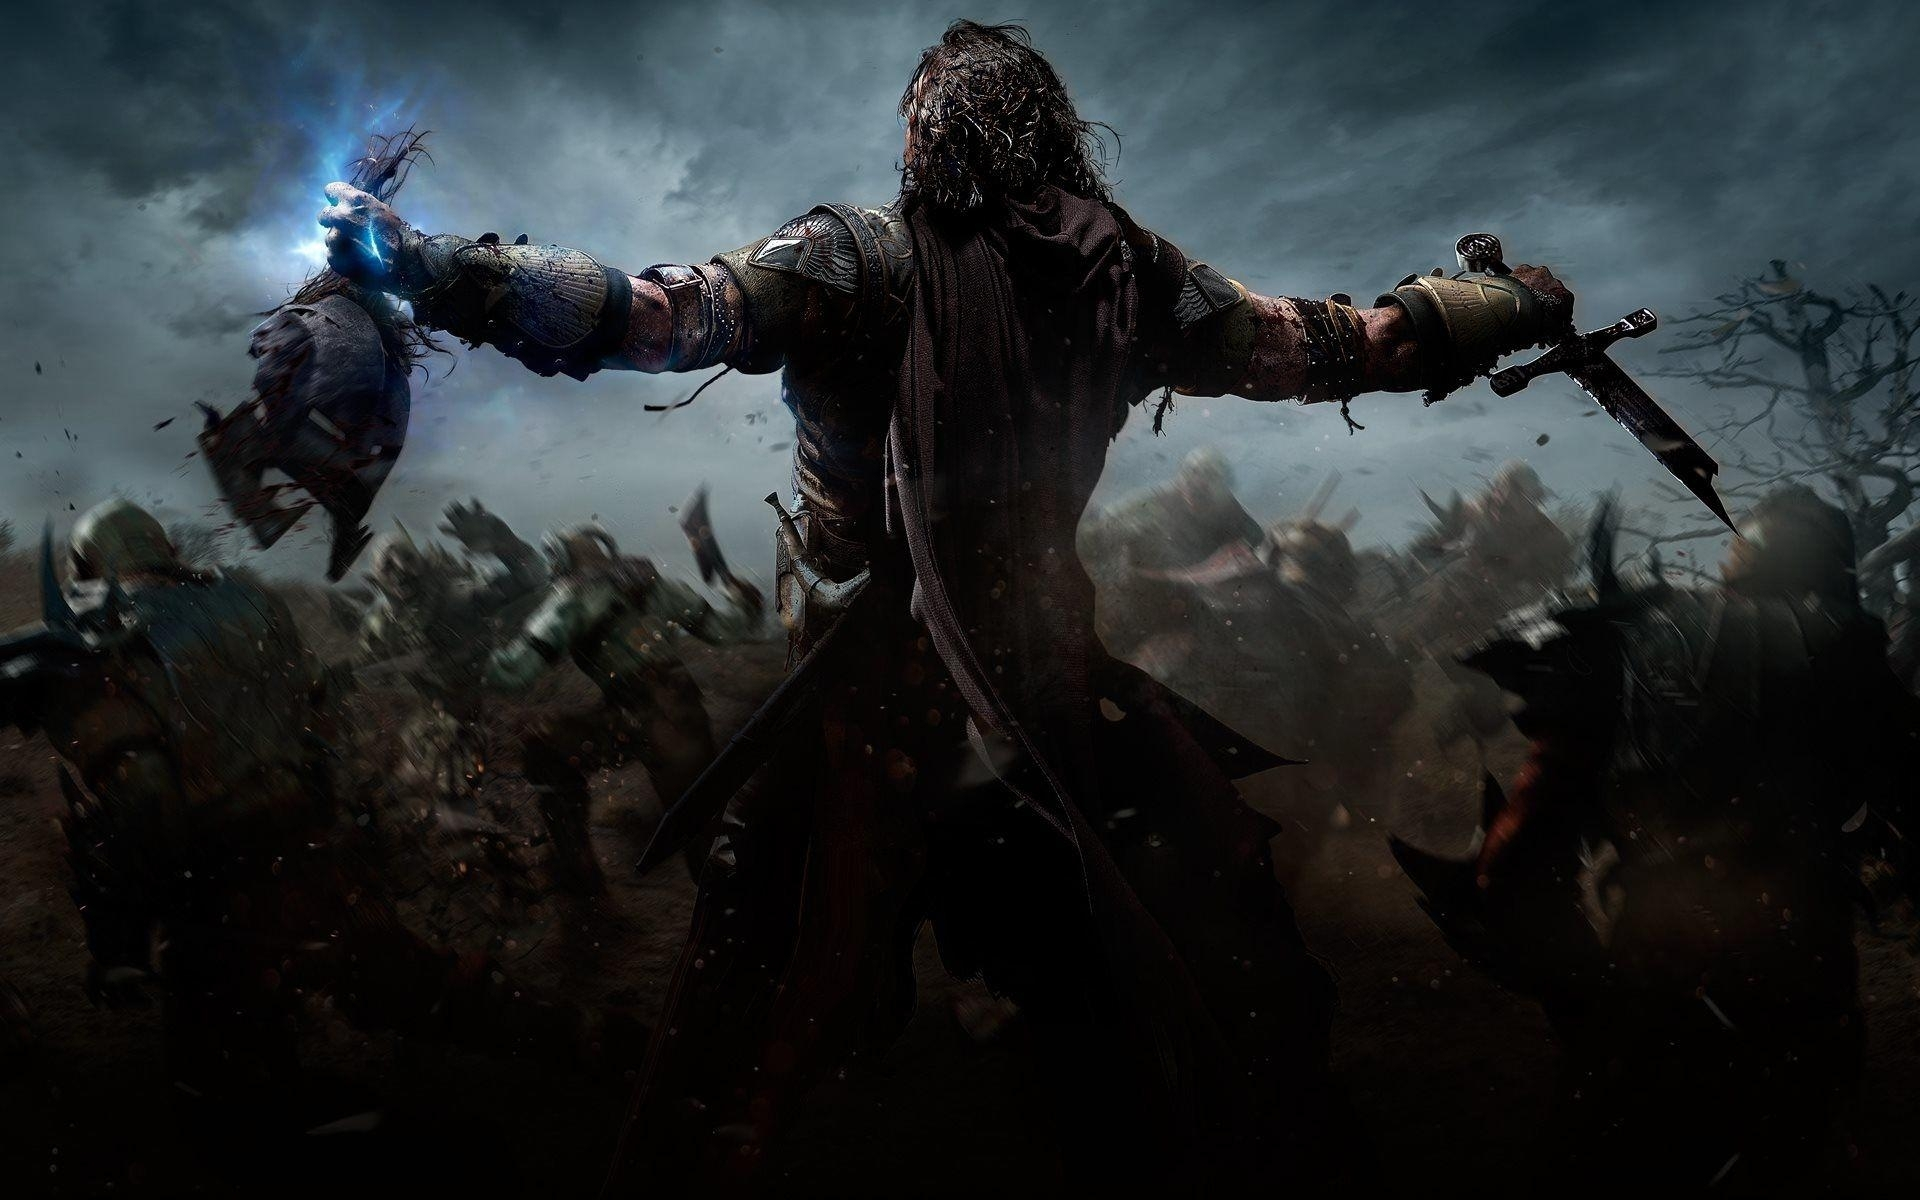 middle-earth: shadow of mordor wallpapers - wallpaper cave